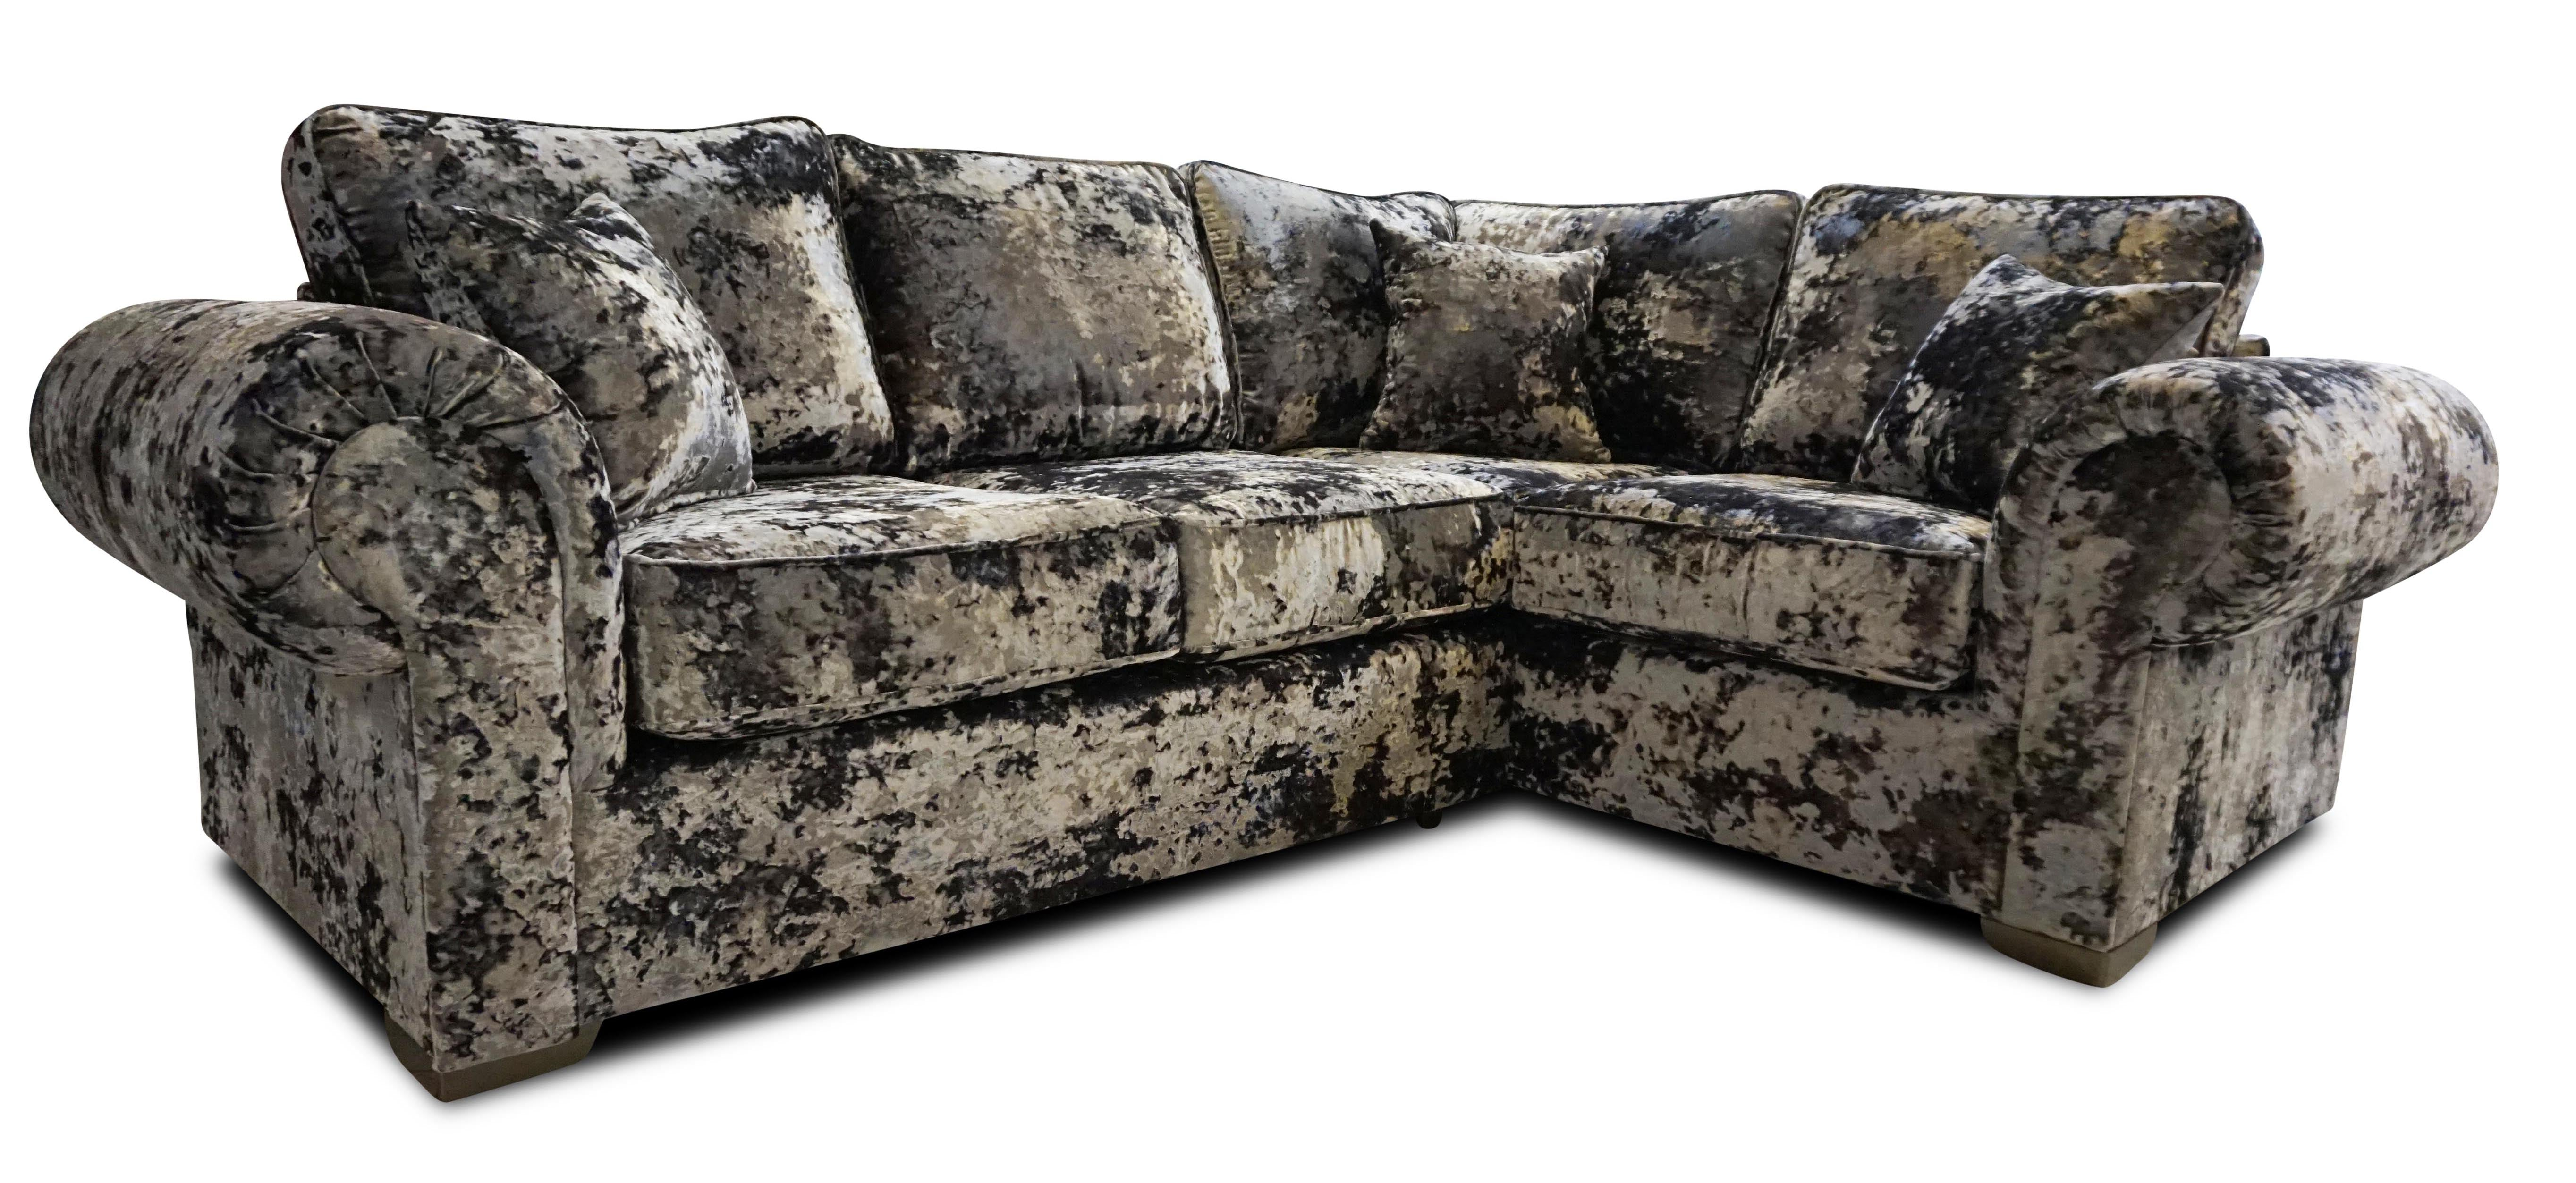 Crushed velvet sofas near Spalding